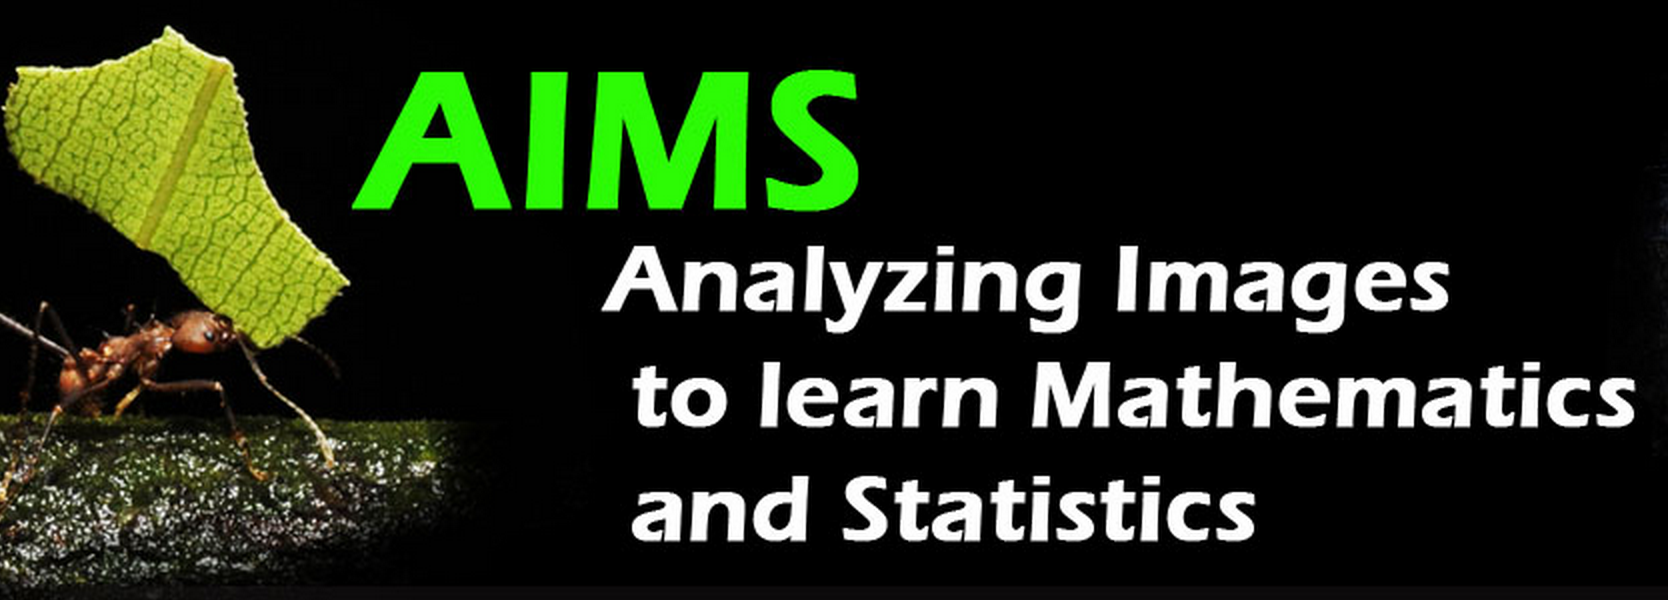 AIMS: Analyzing Images to learn Mathematics and Statistics group image